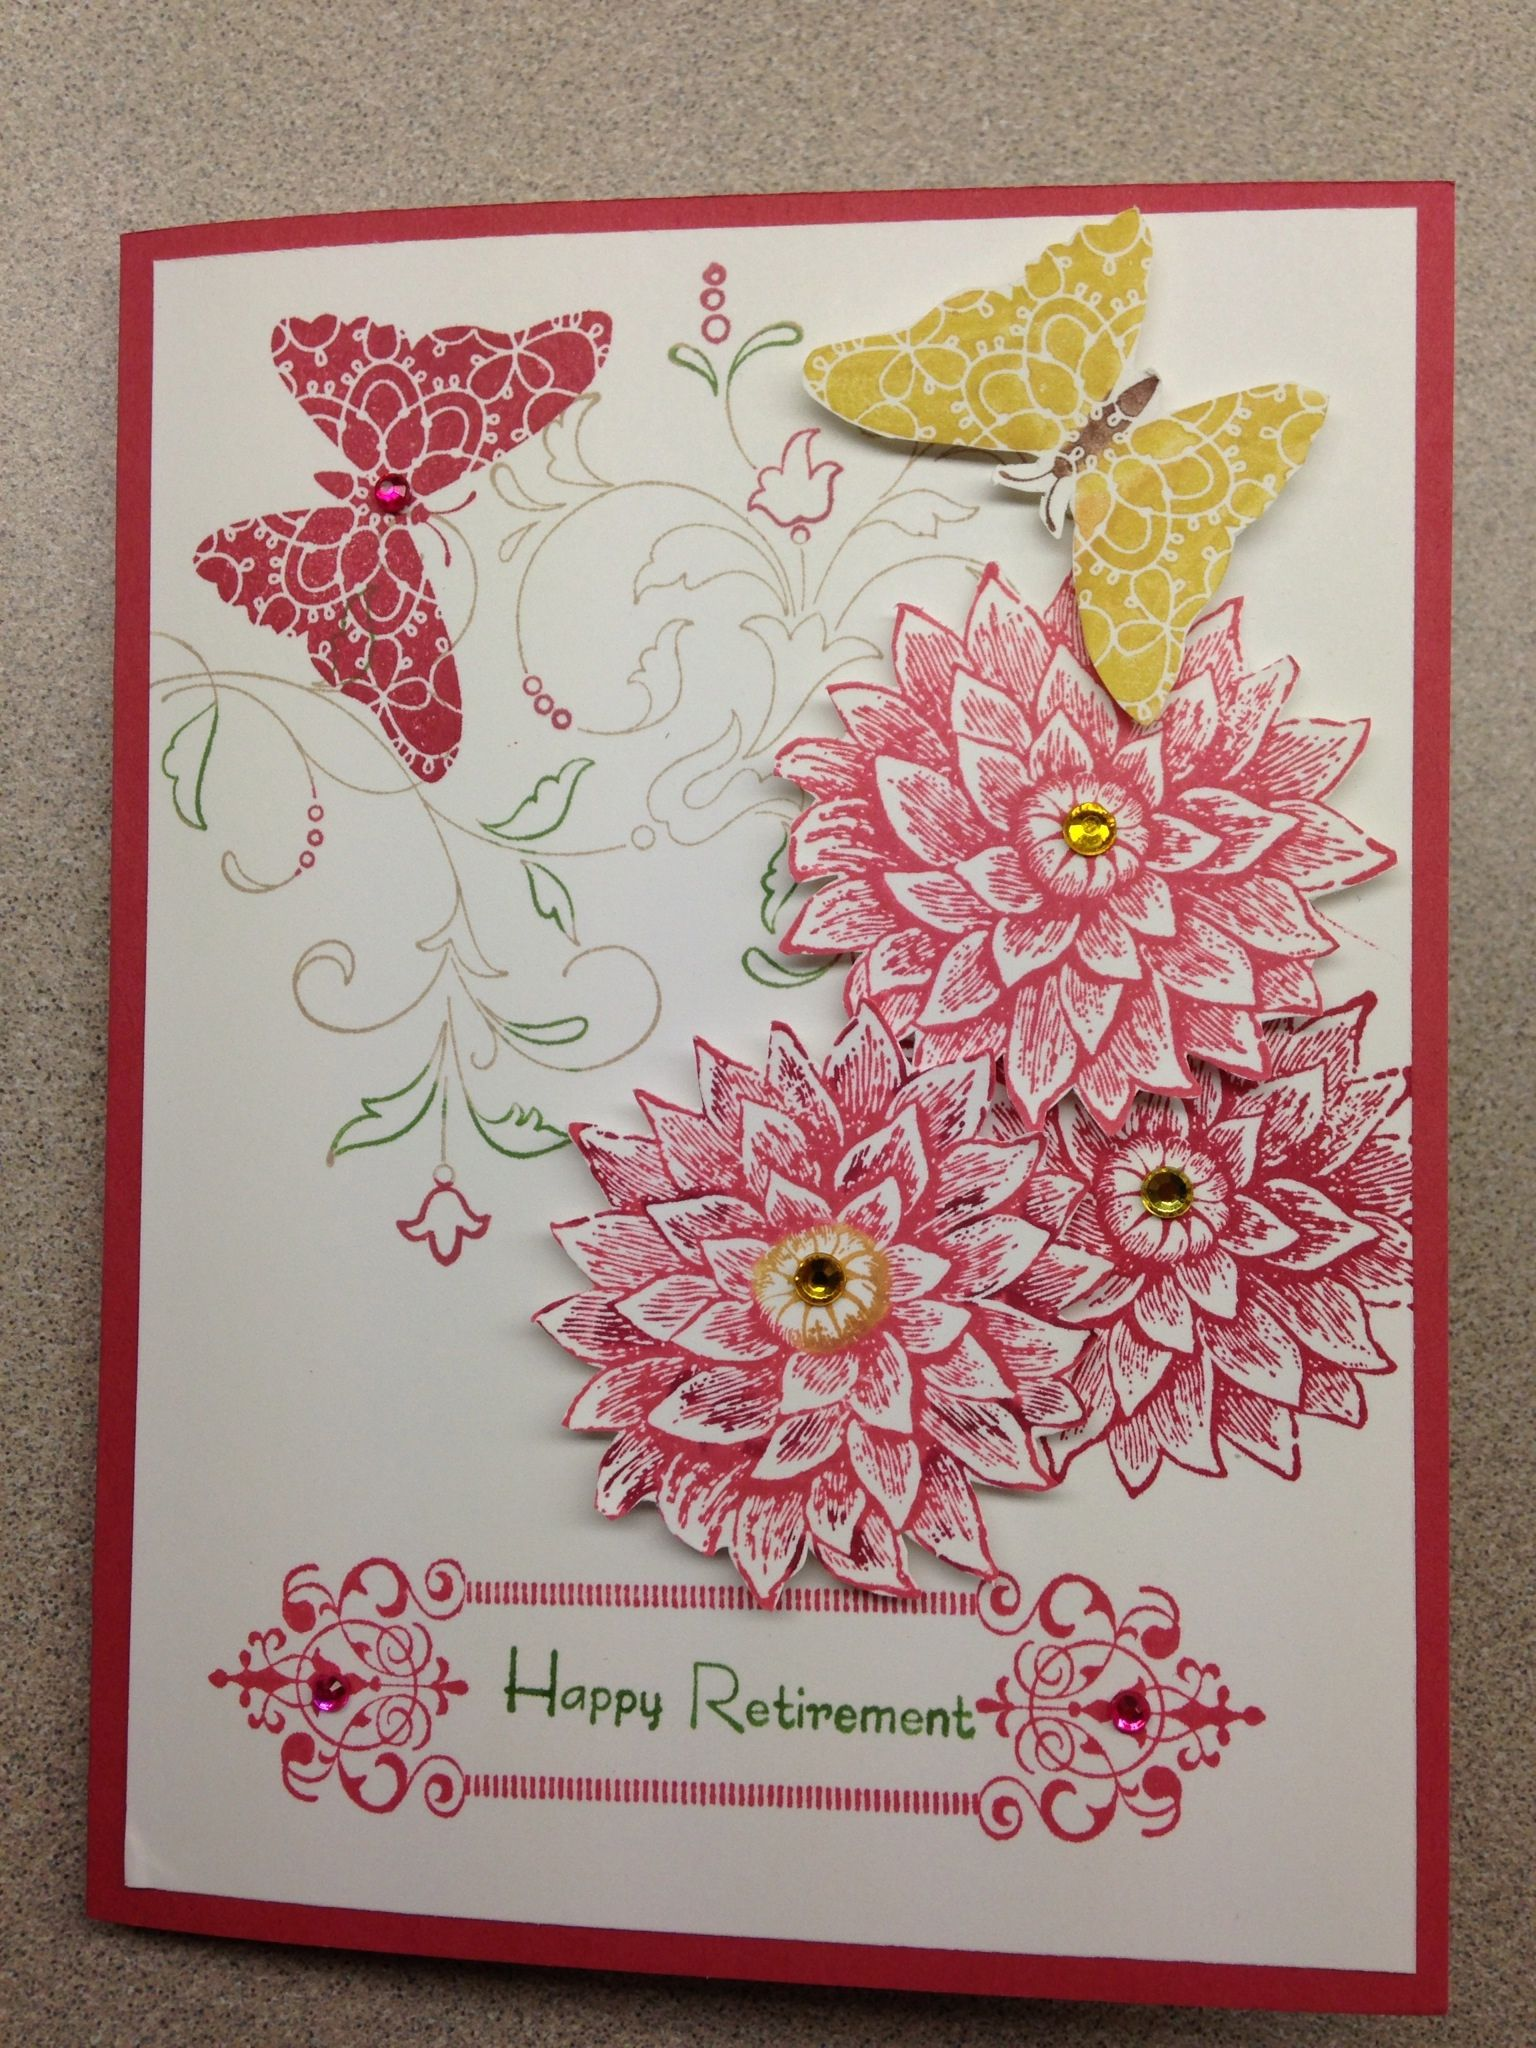 Stampin up retirement card made with creative elements stamp set